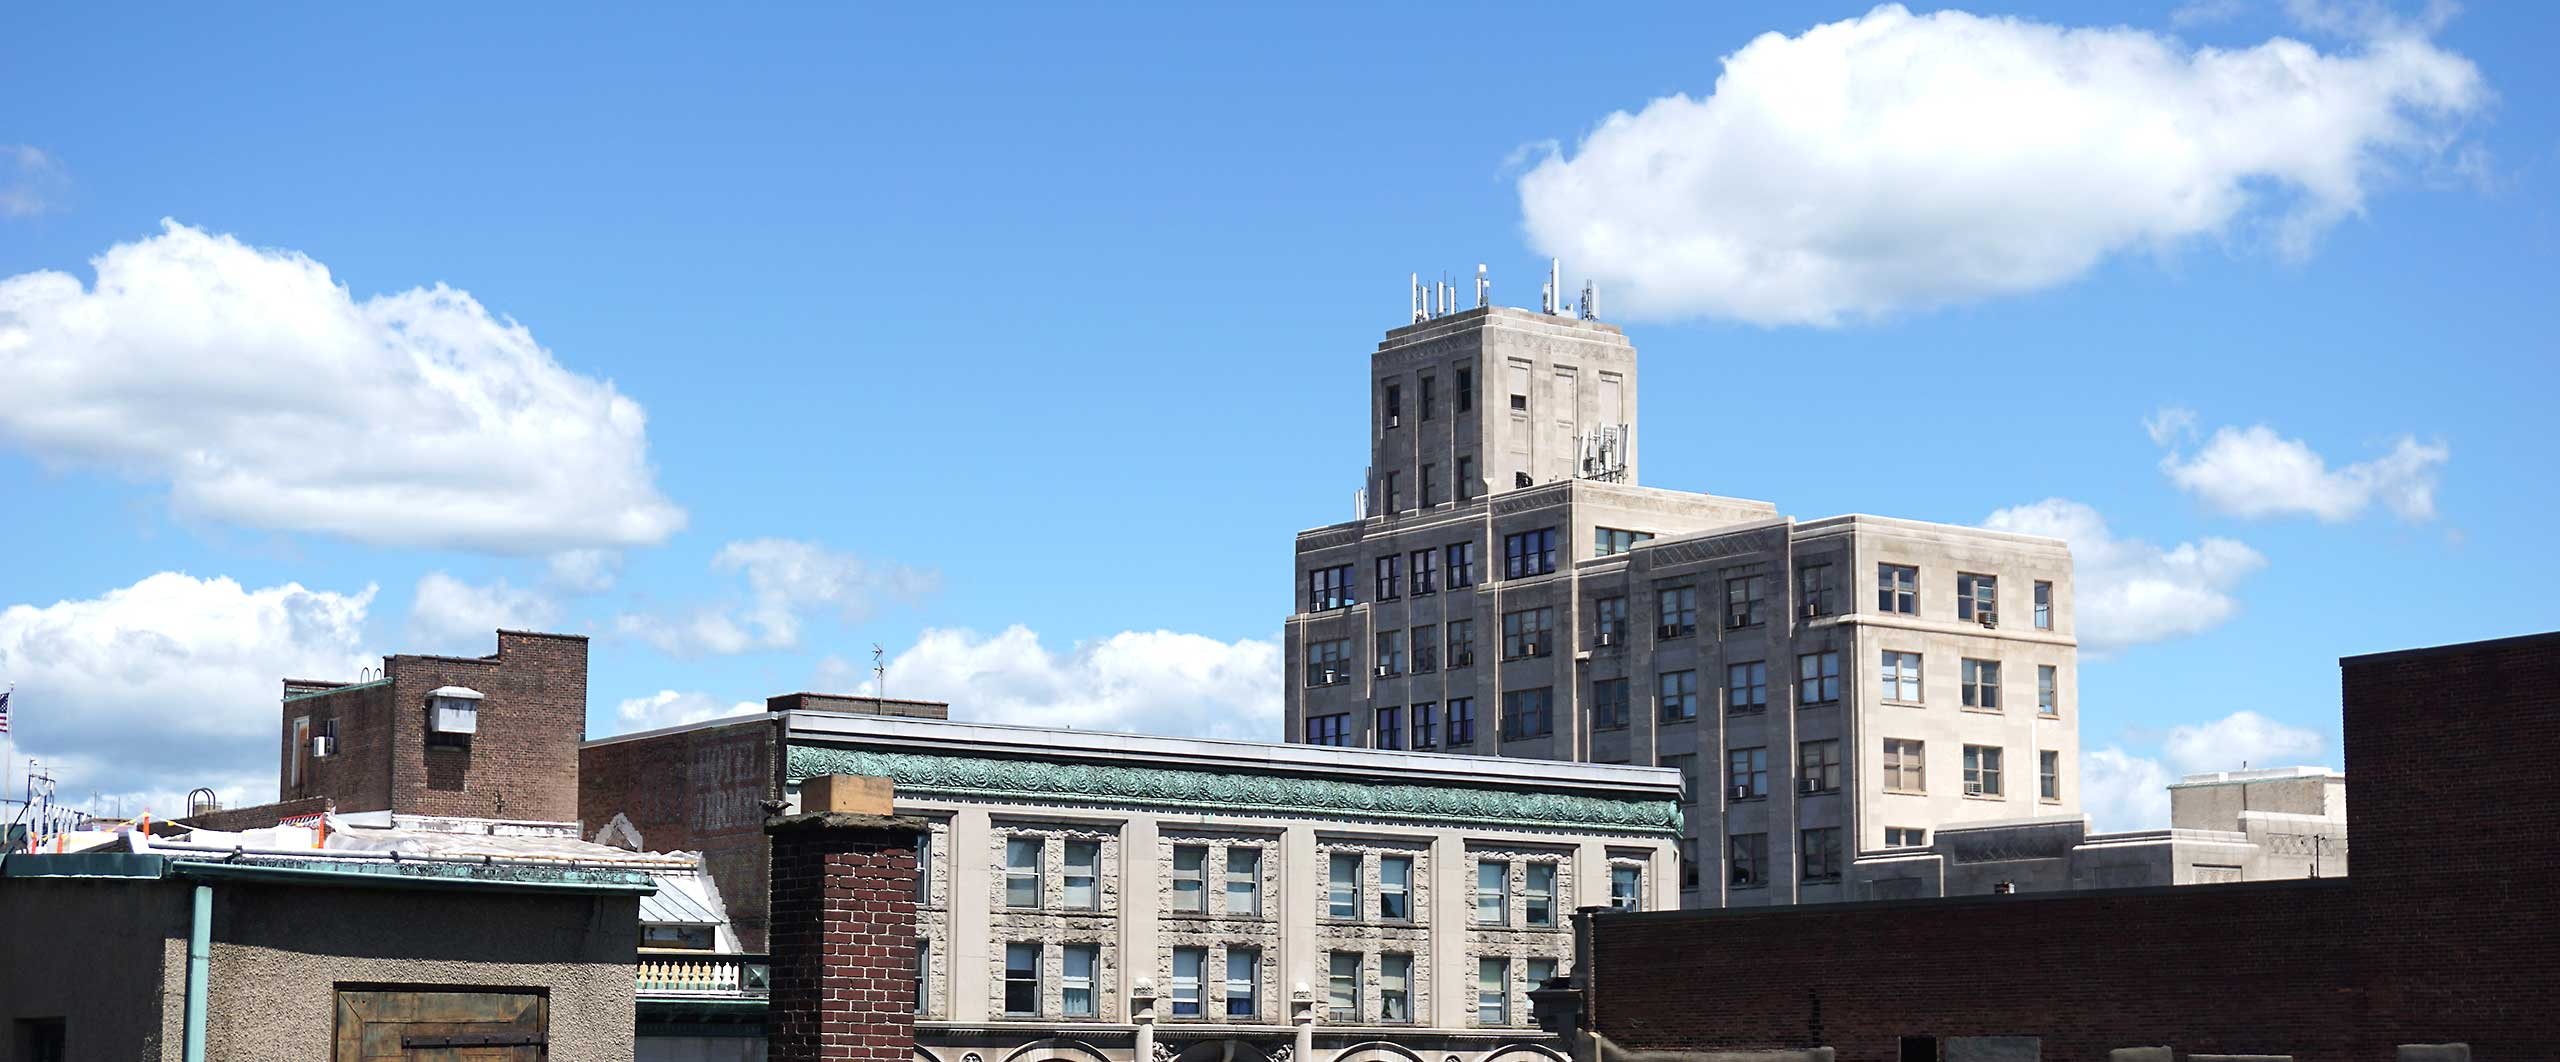 Distant view of The Bank Towers property in downtown Scranton